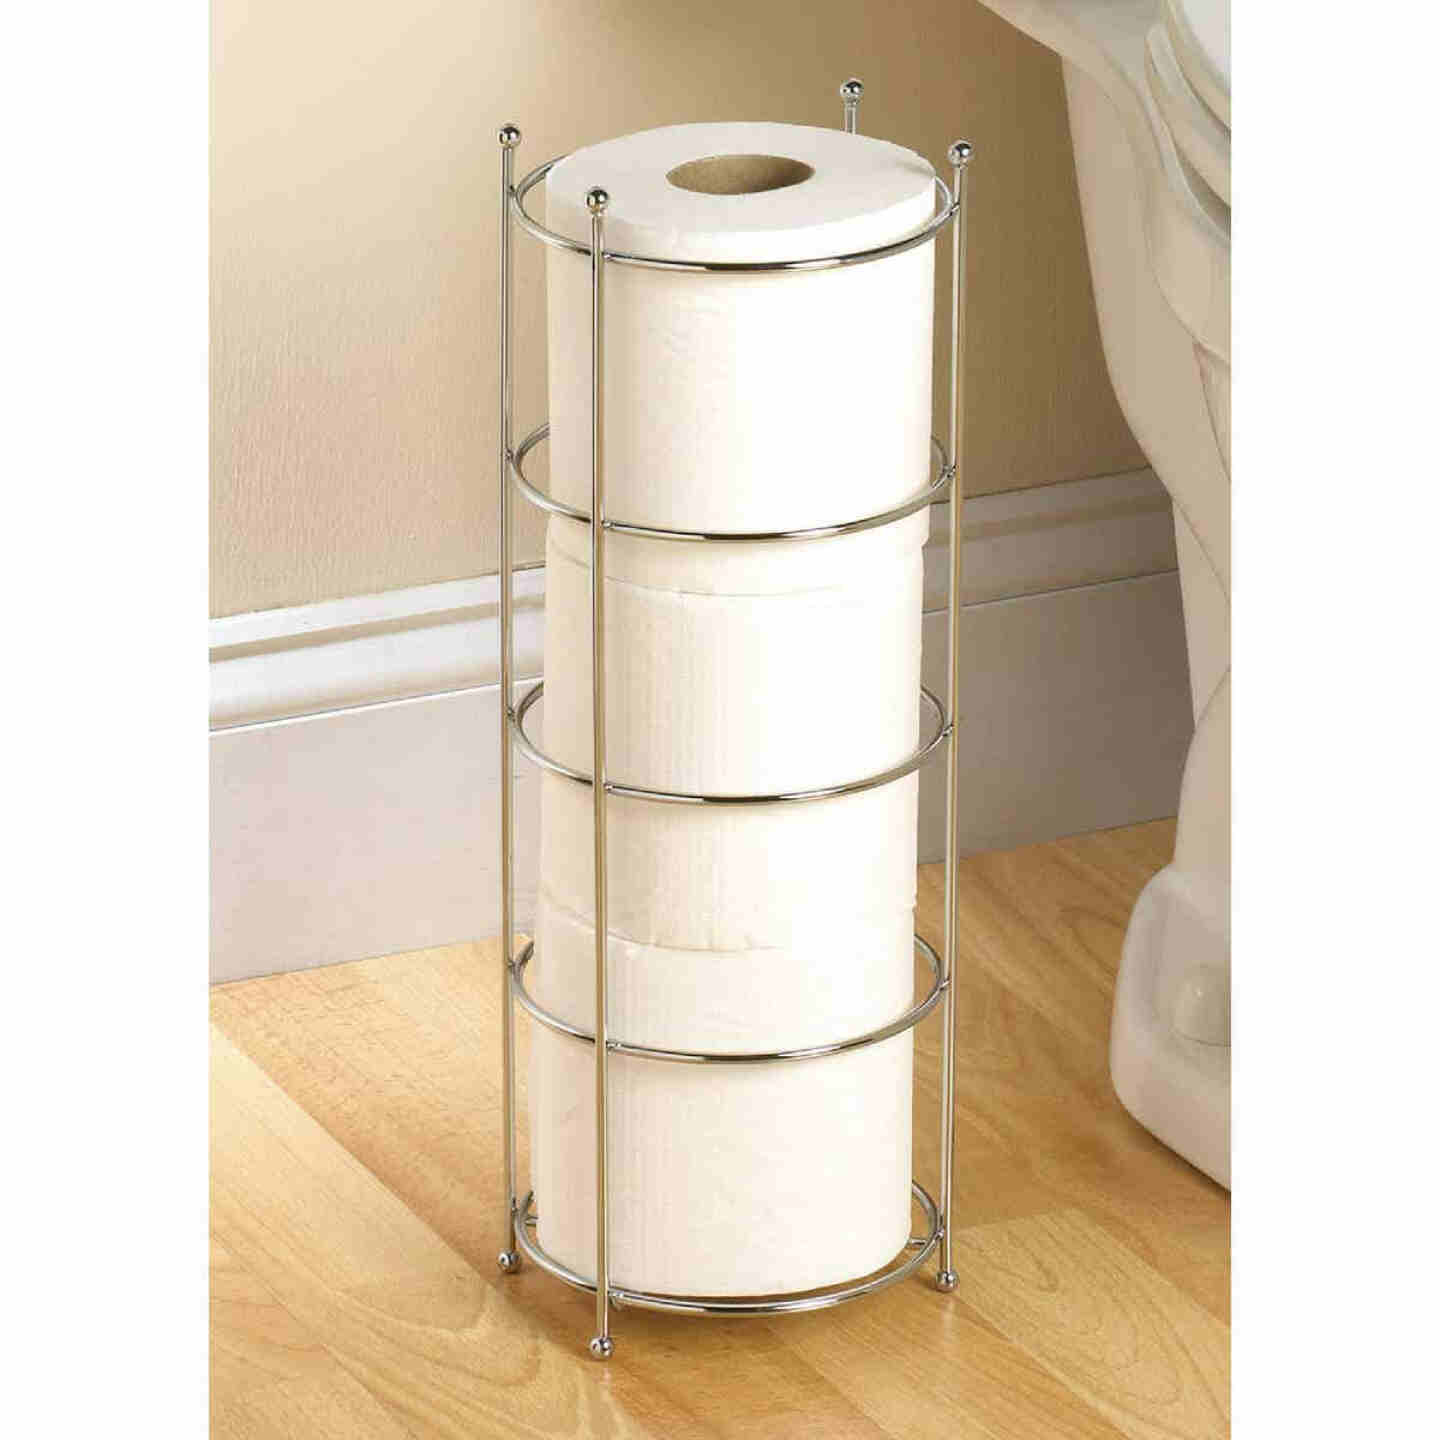 Zenith Polished Chrome Freestanding Toilet Paper Holder Image 1